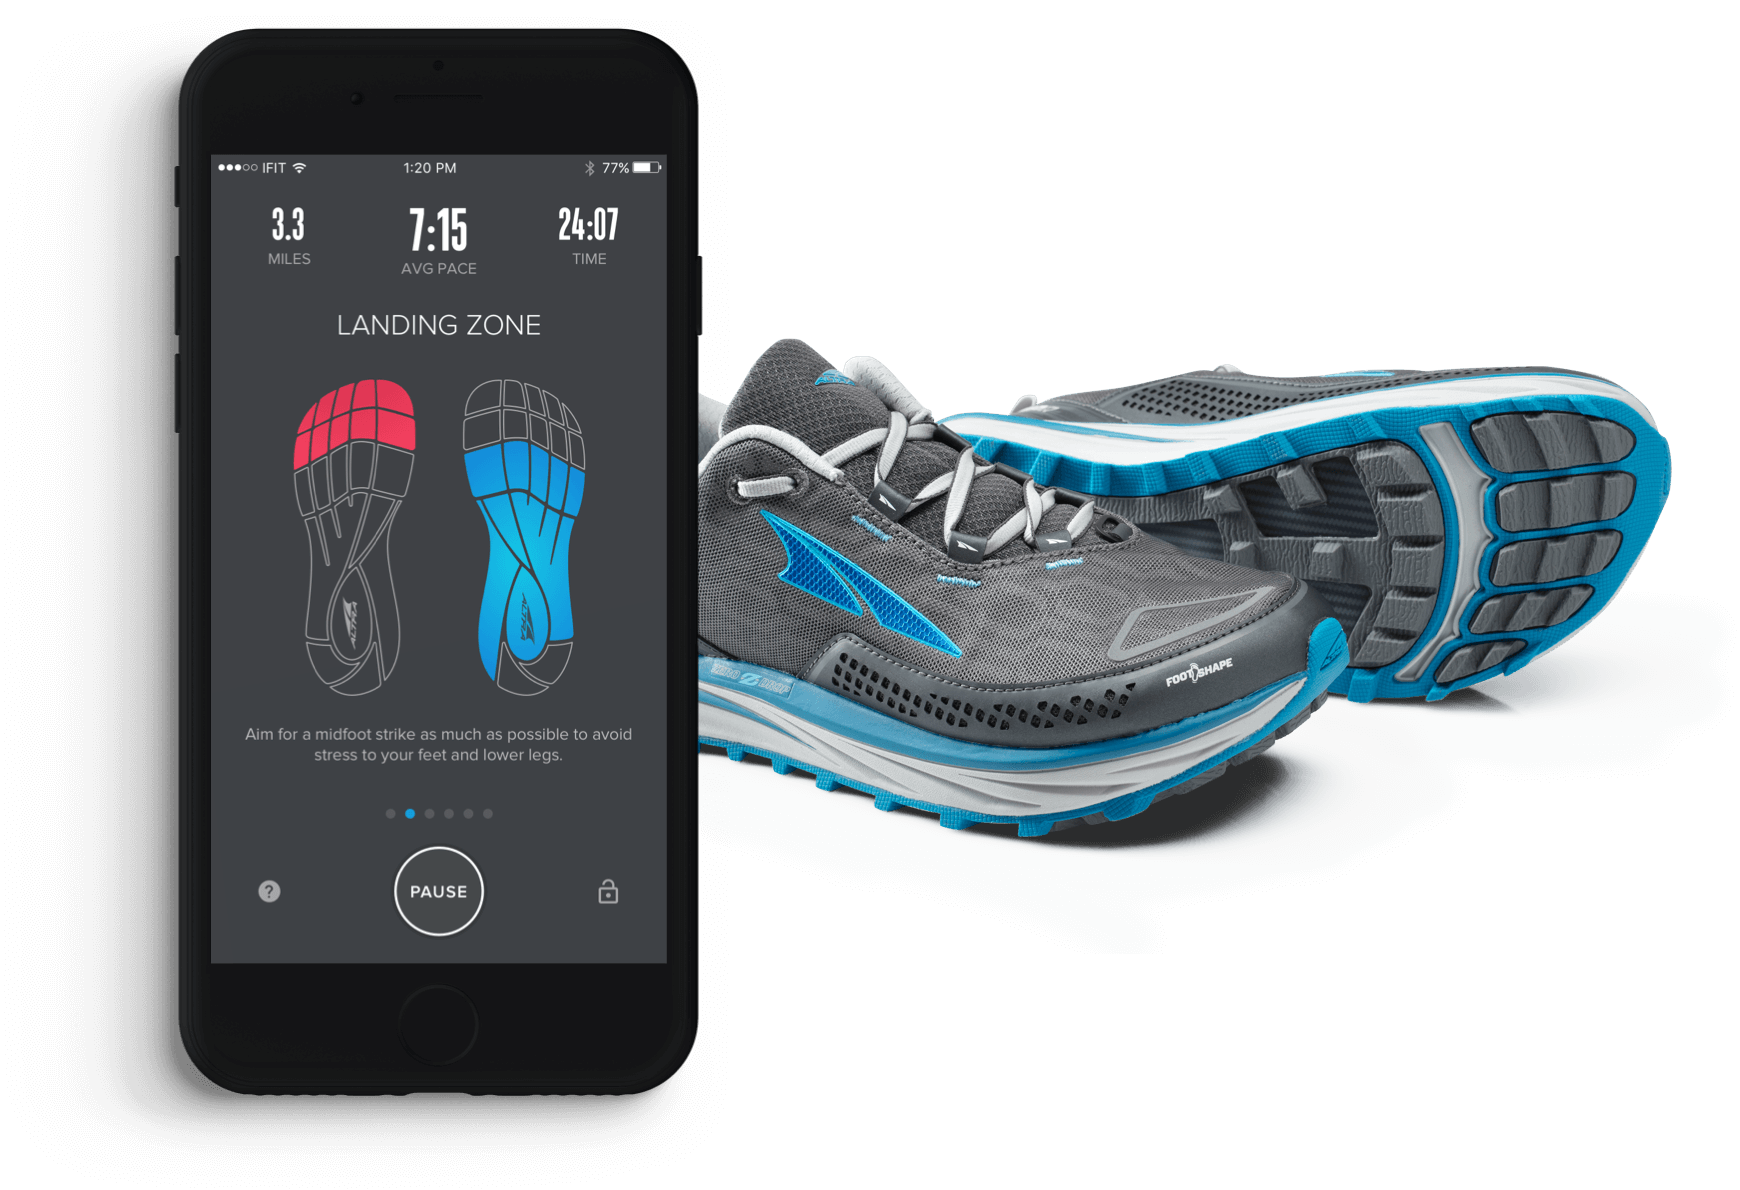 iFit Apps